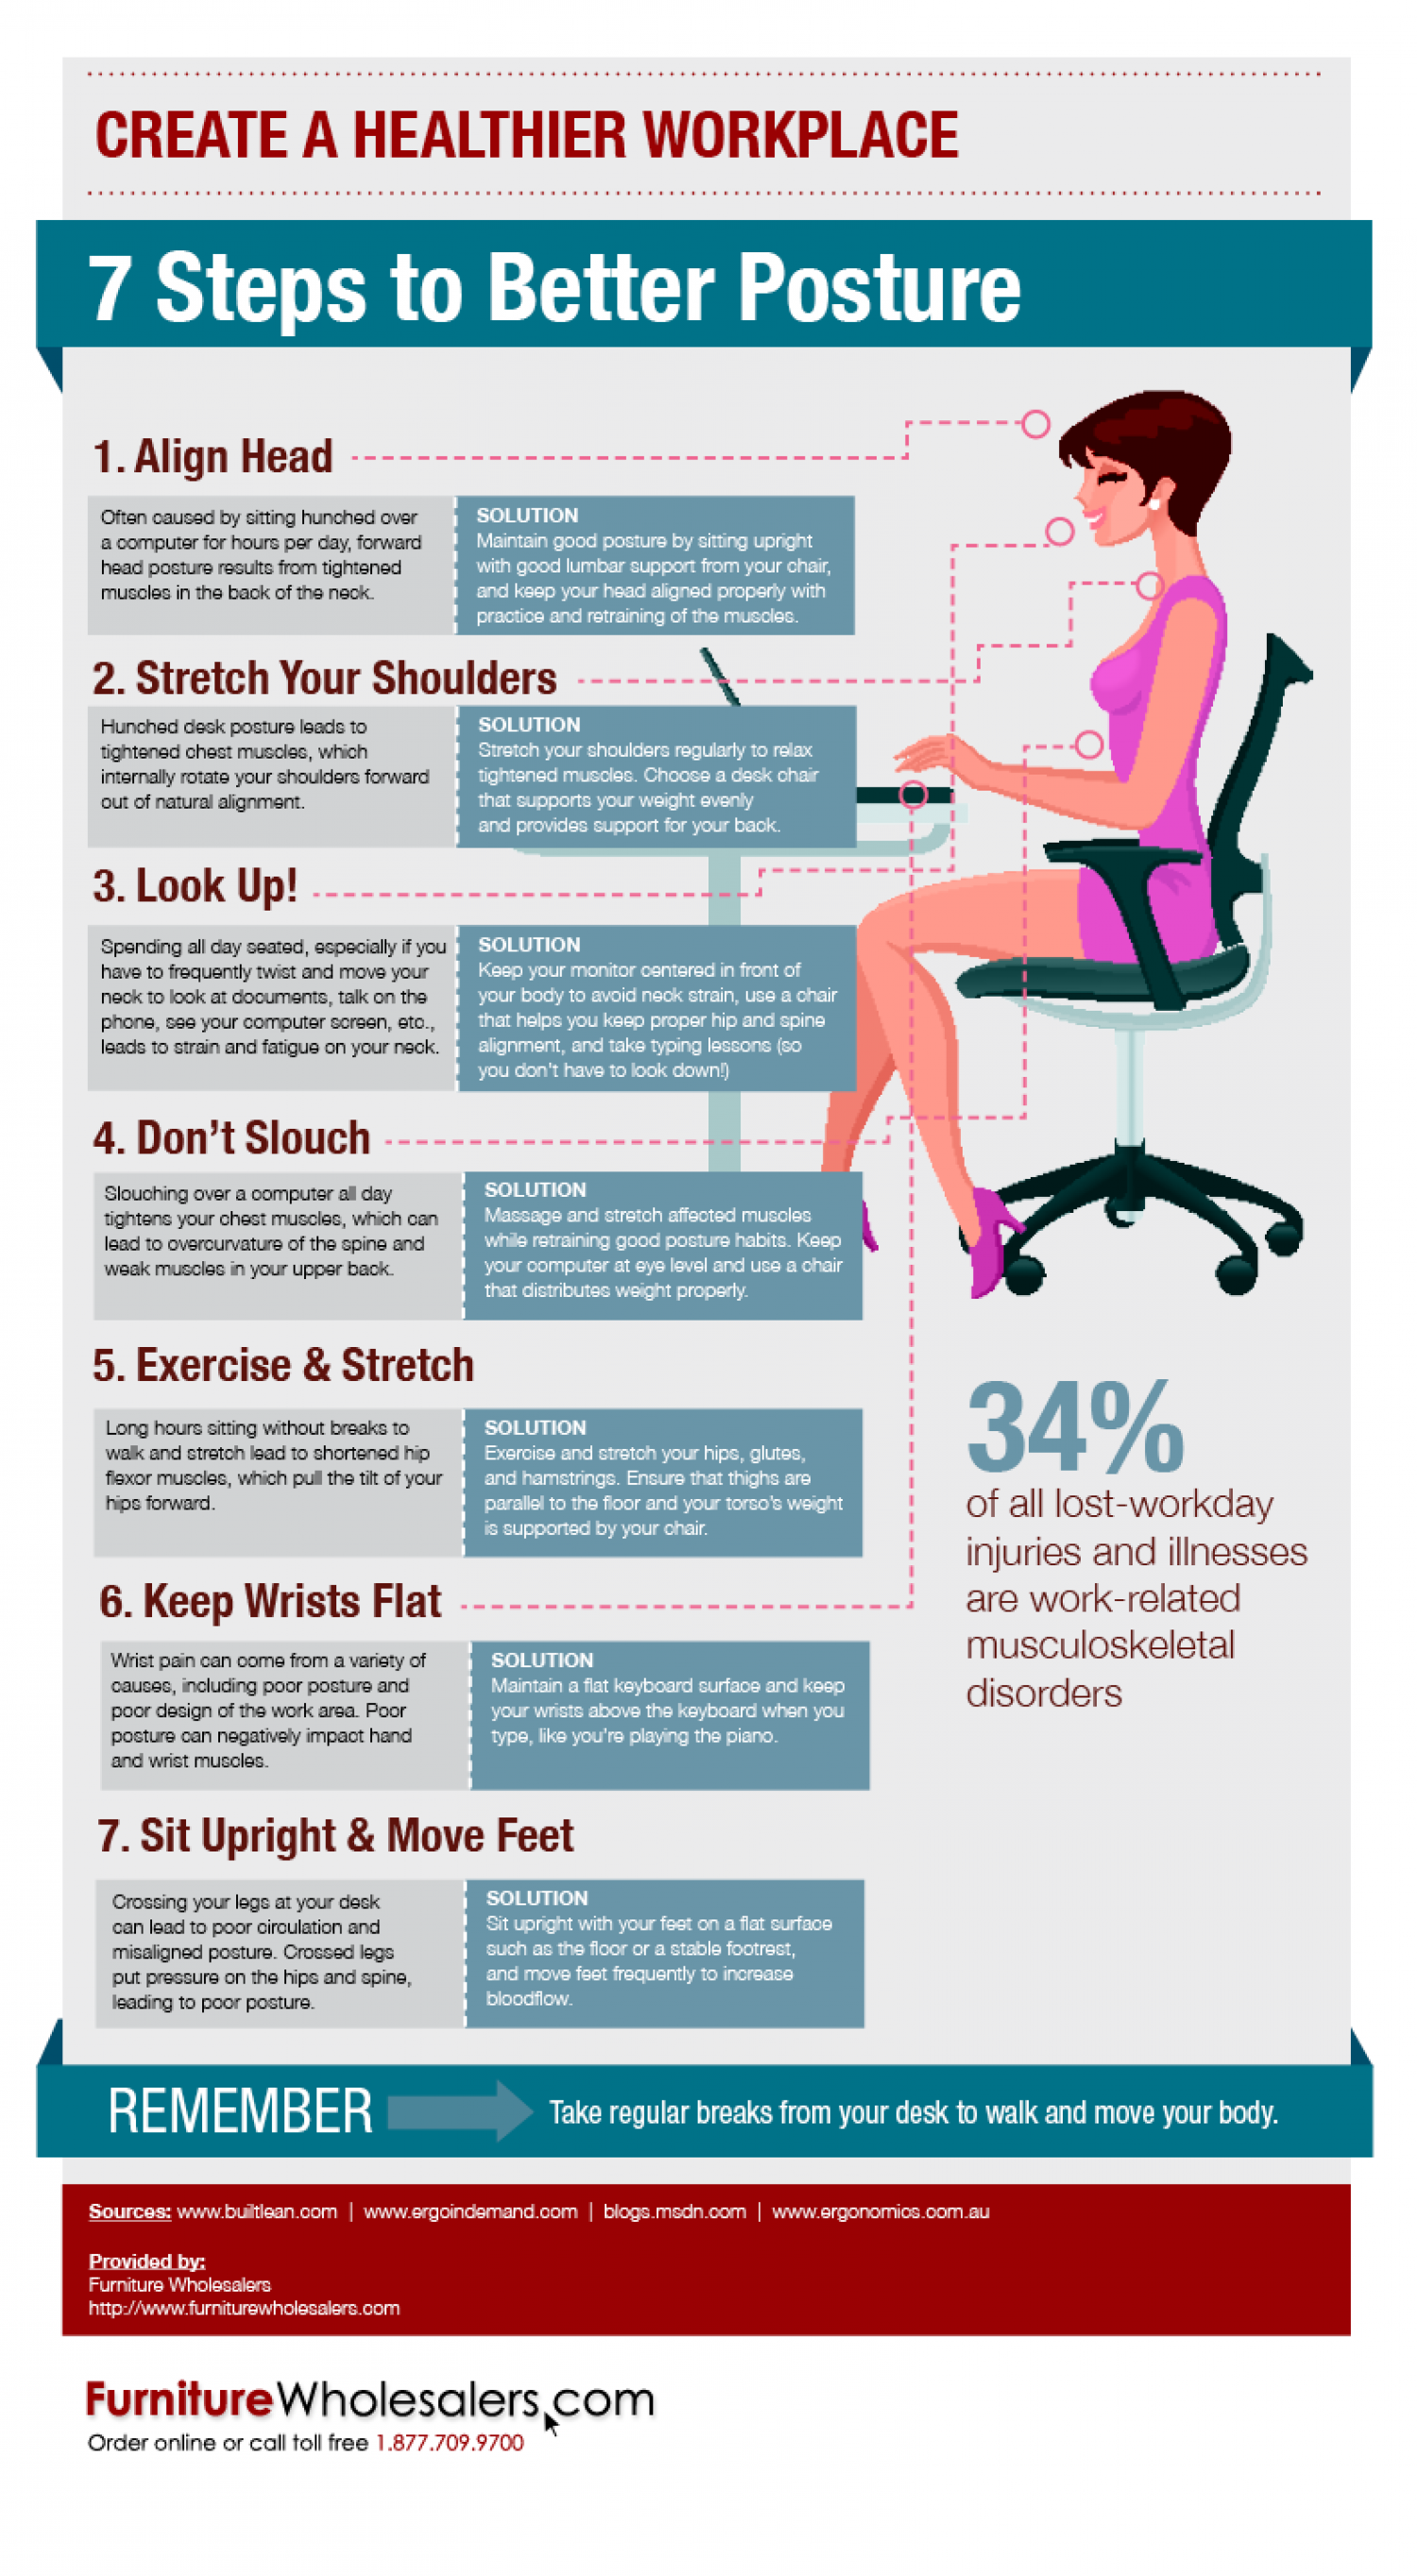 7 Steps to Better Posture Infographic